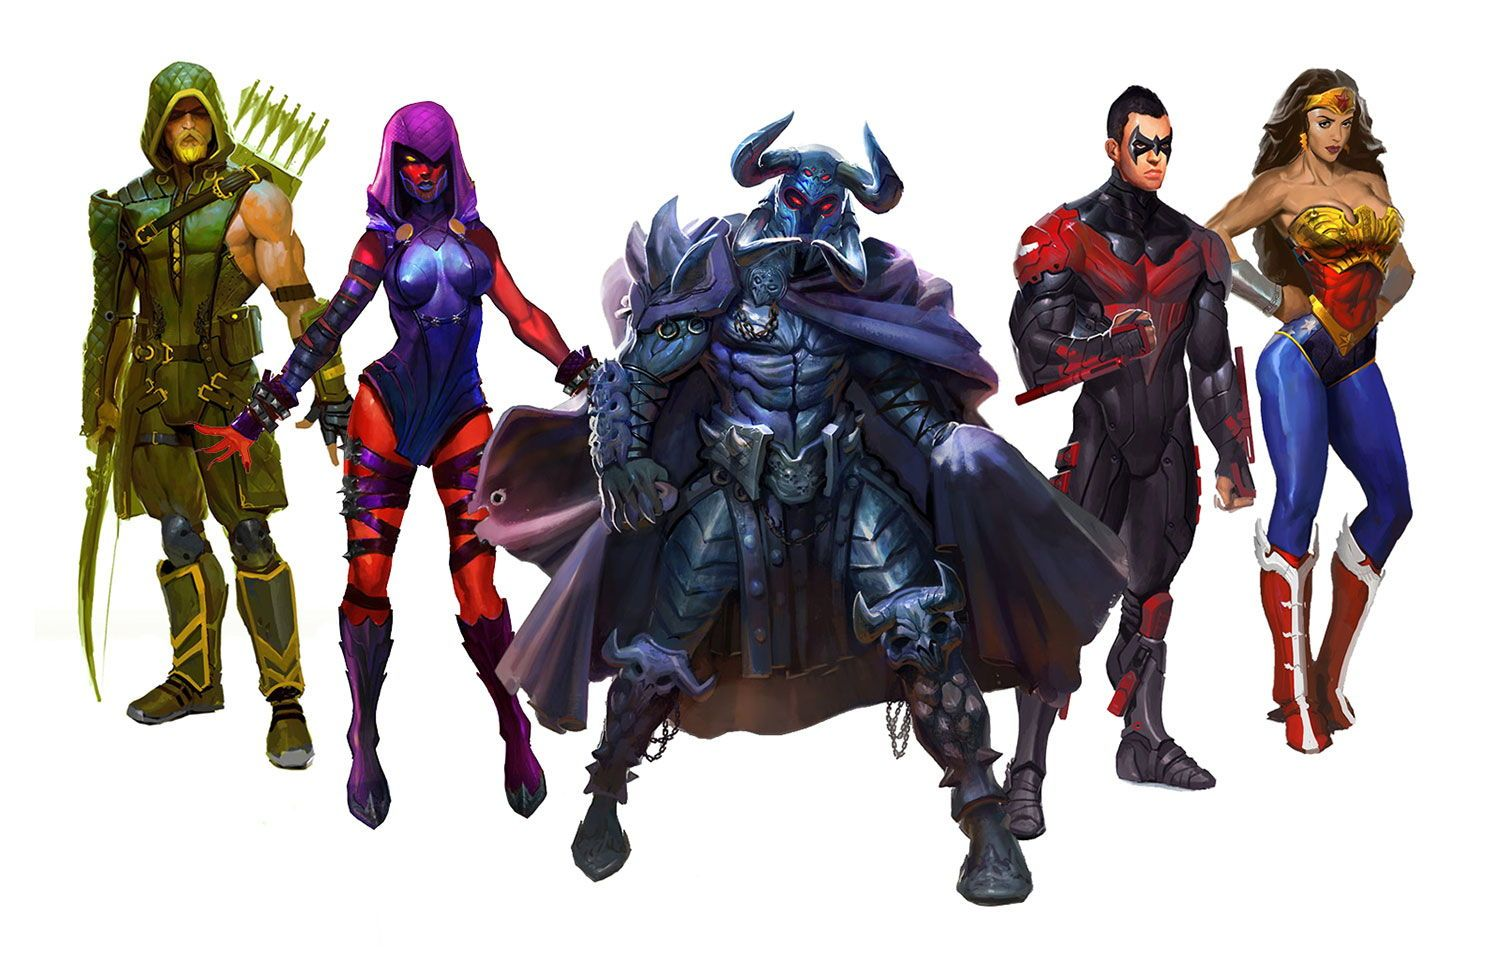 Injustice Gods Among Us Art Gallery Concept art gallery